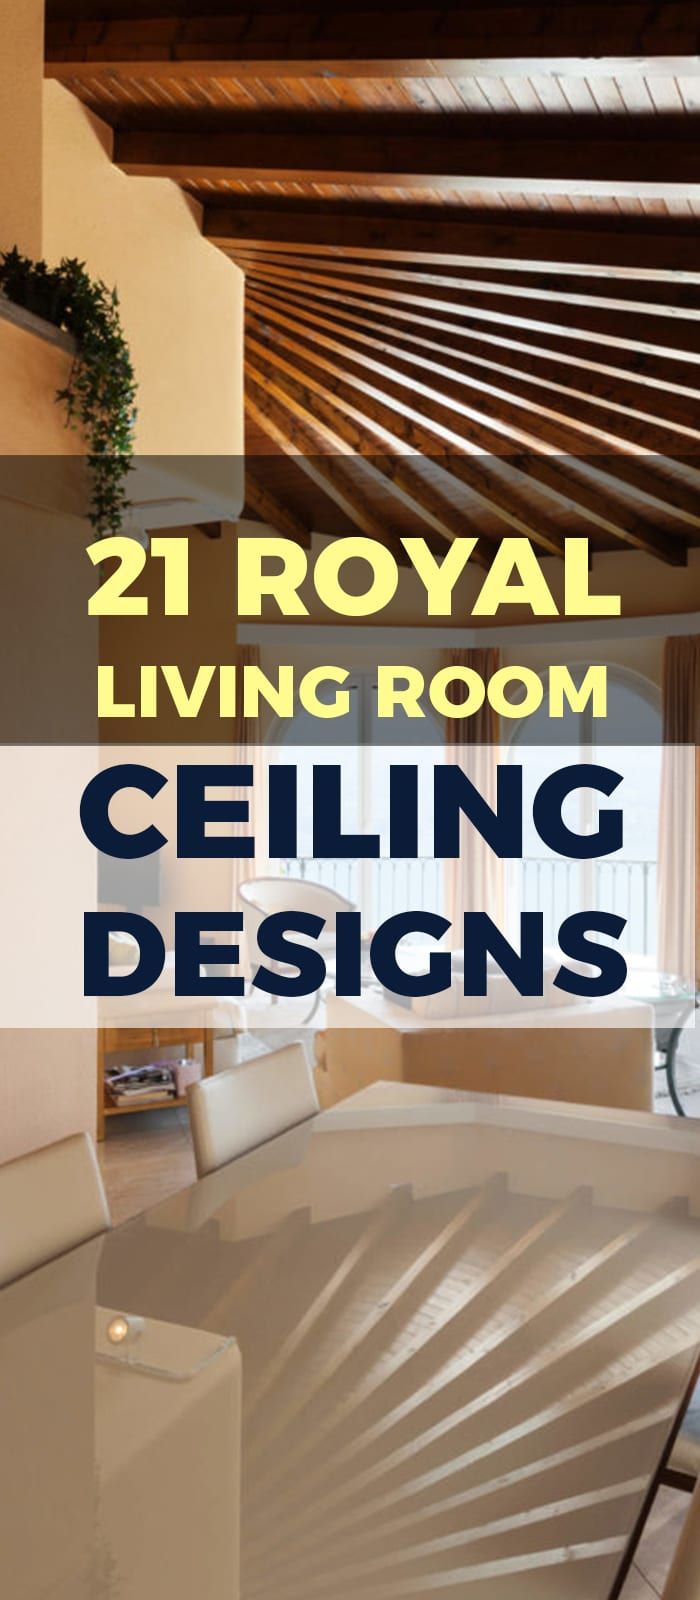 Curved ceiling design for living room apartments.